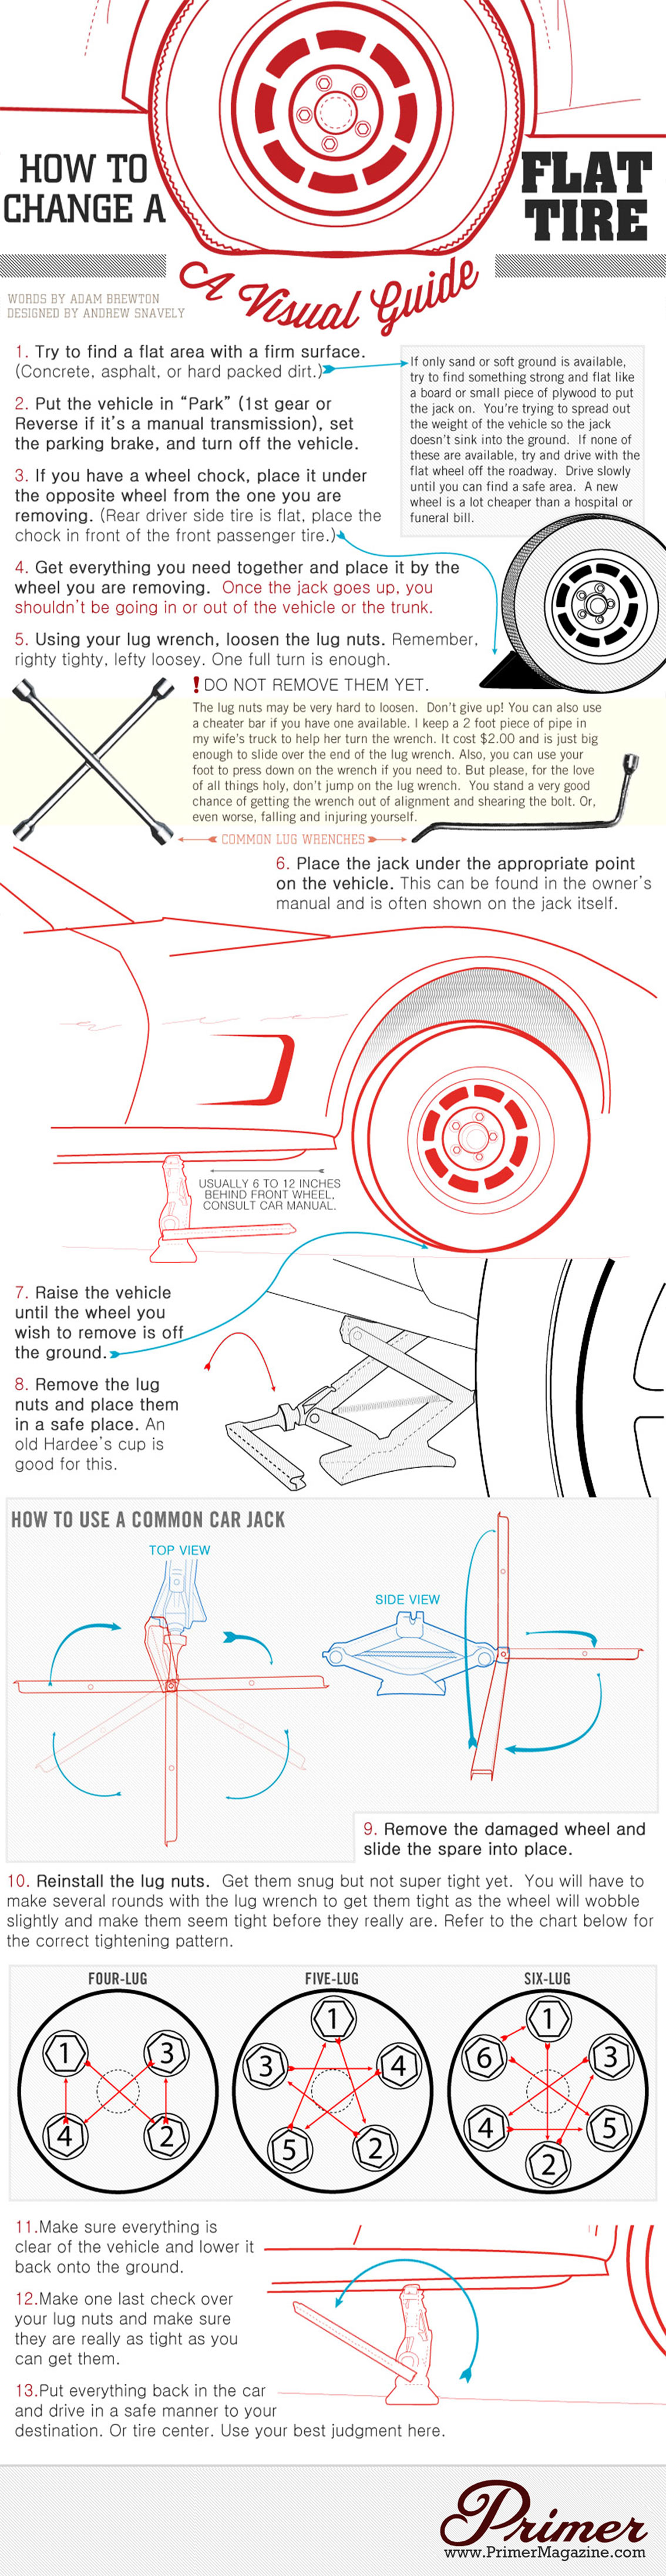 How to Change a Flat Tire on a Car Infographic